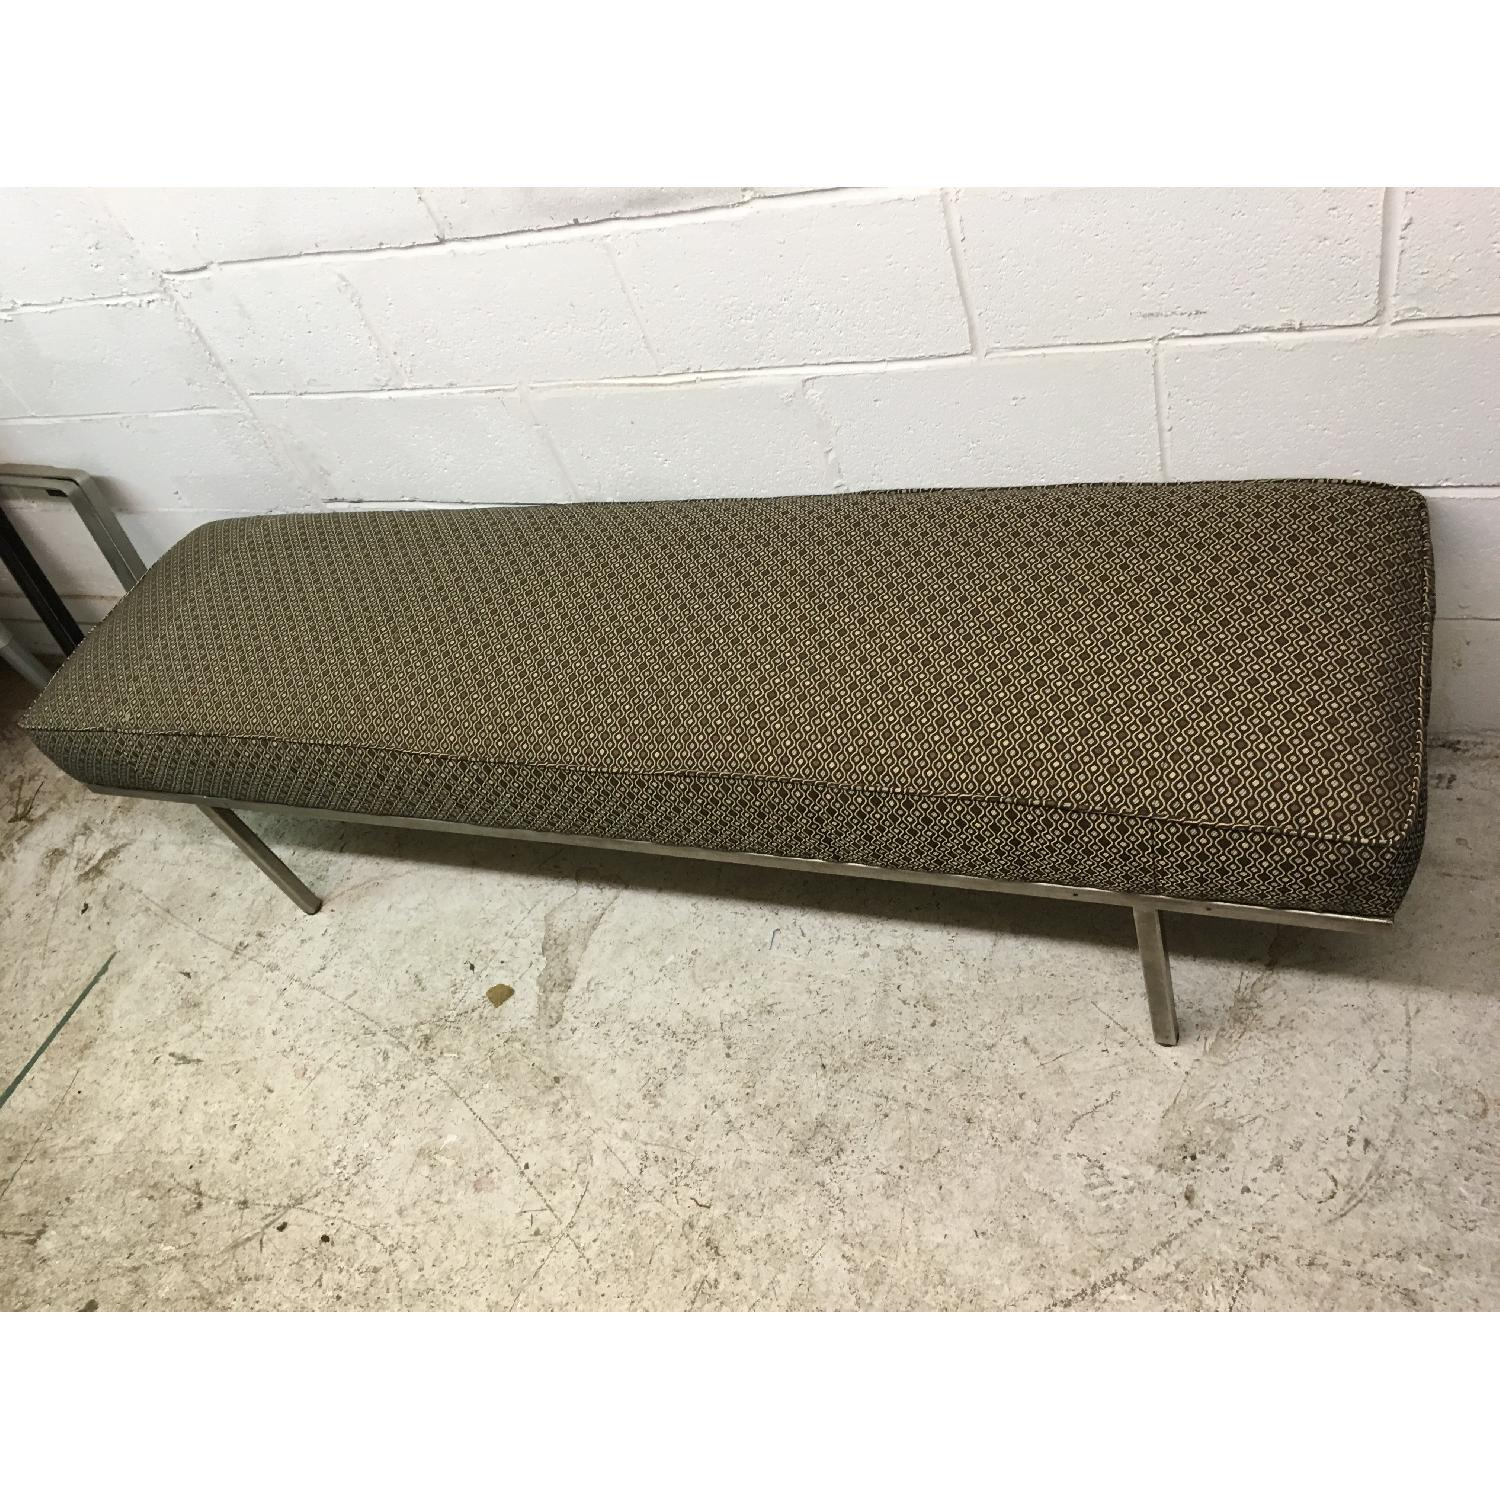 Knoll Style Mid Century Modern Chrome Bench - image-4